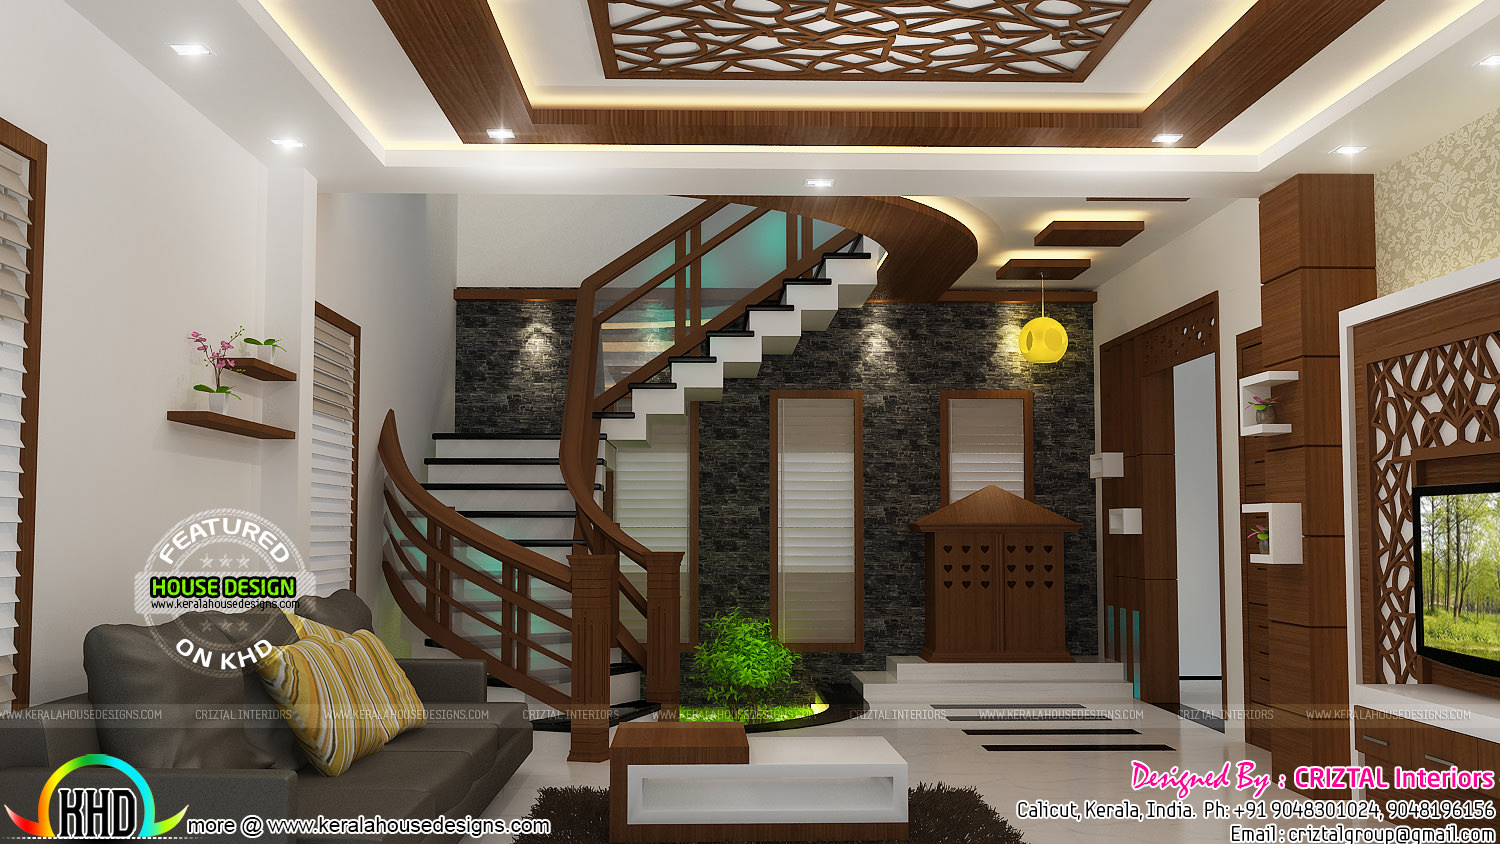 Bedroom dining hall and living interior kerala home for Dining hall design ideas